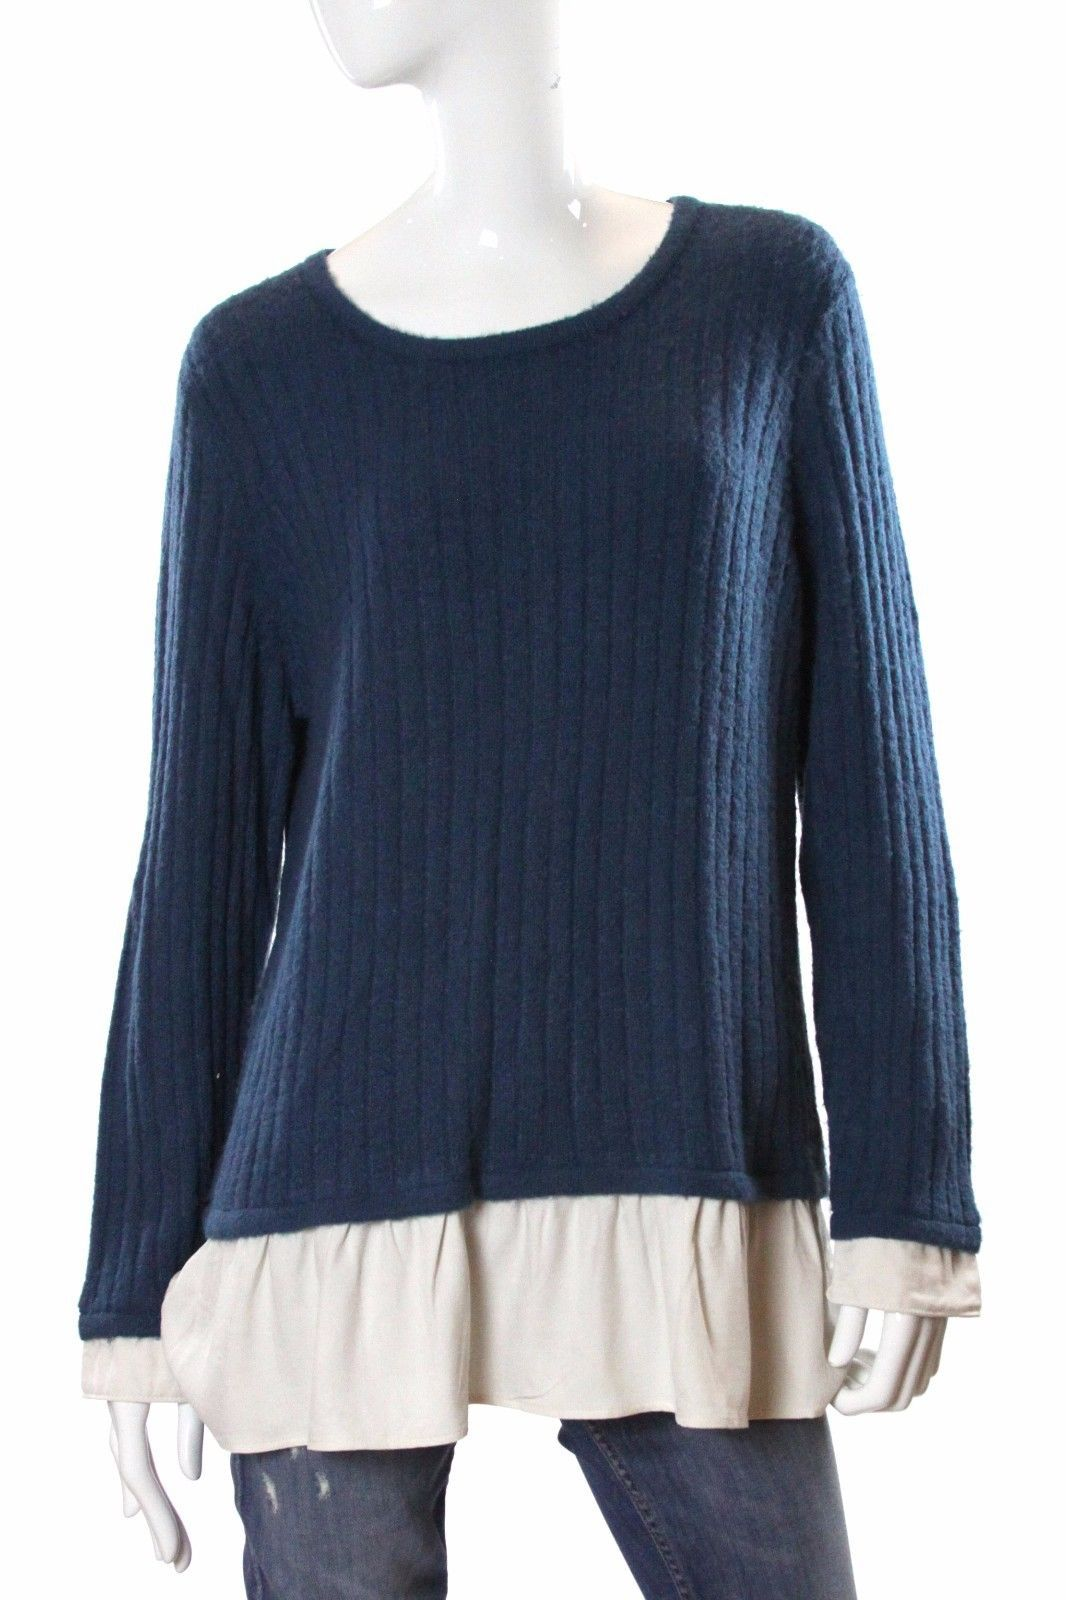 Kensie Long Sleeve Ribbed Sweater Layered Look Blue/Ivory NWT